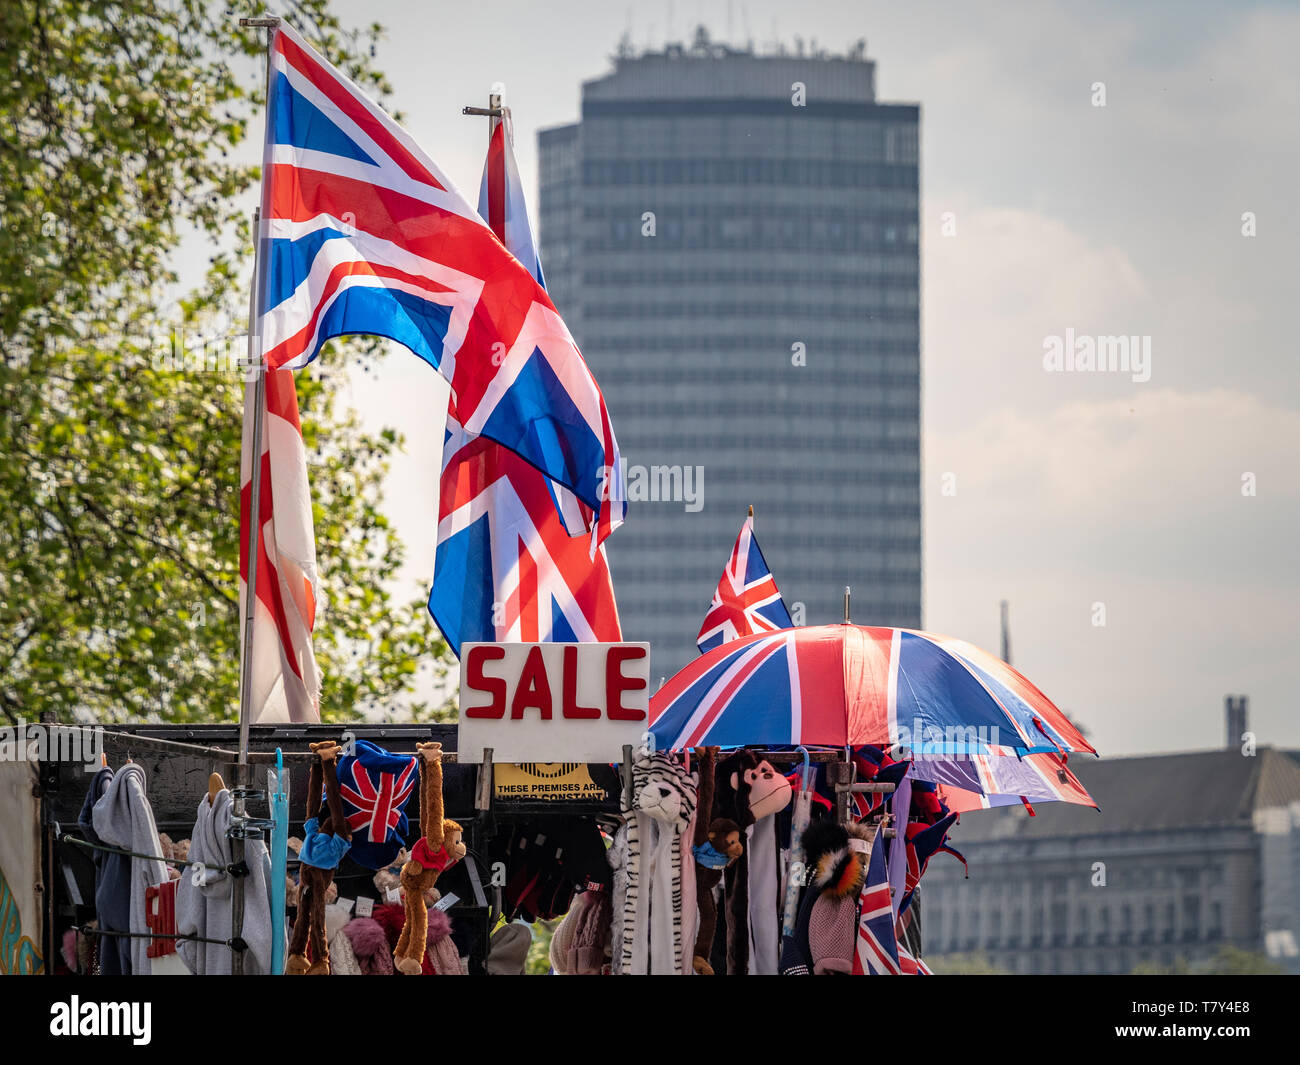 SALE sign with union jack flags and umbrellas on top of souvenir stall in London, UK. - Stock Image